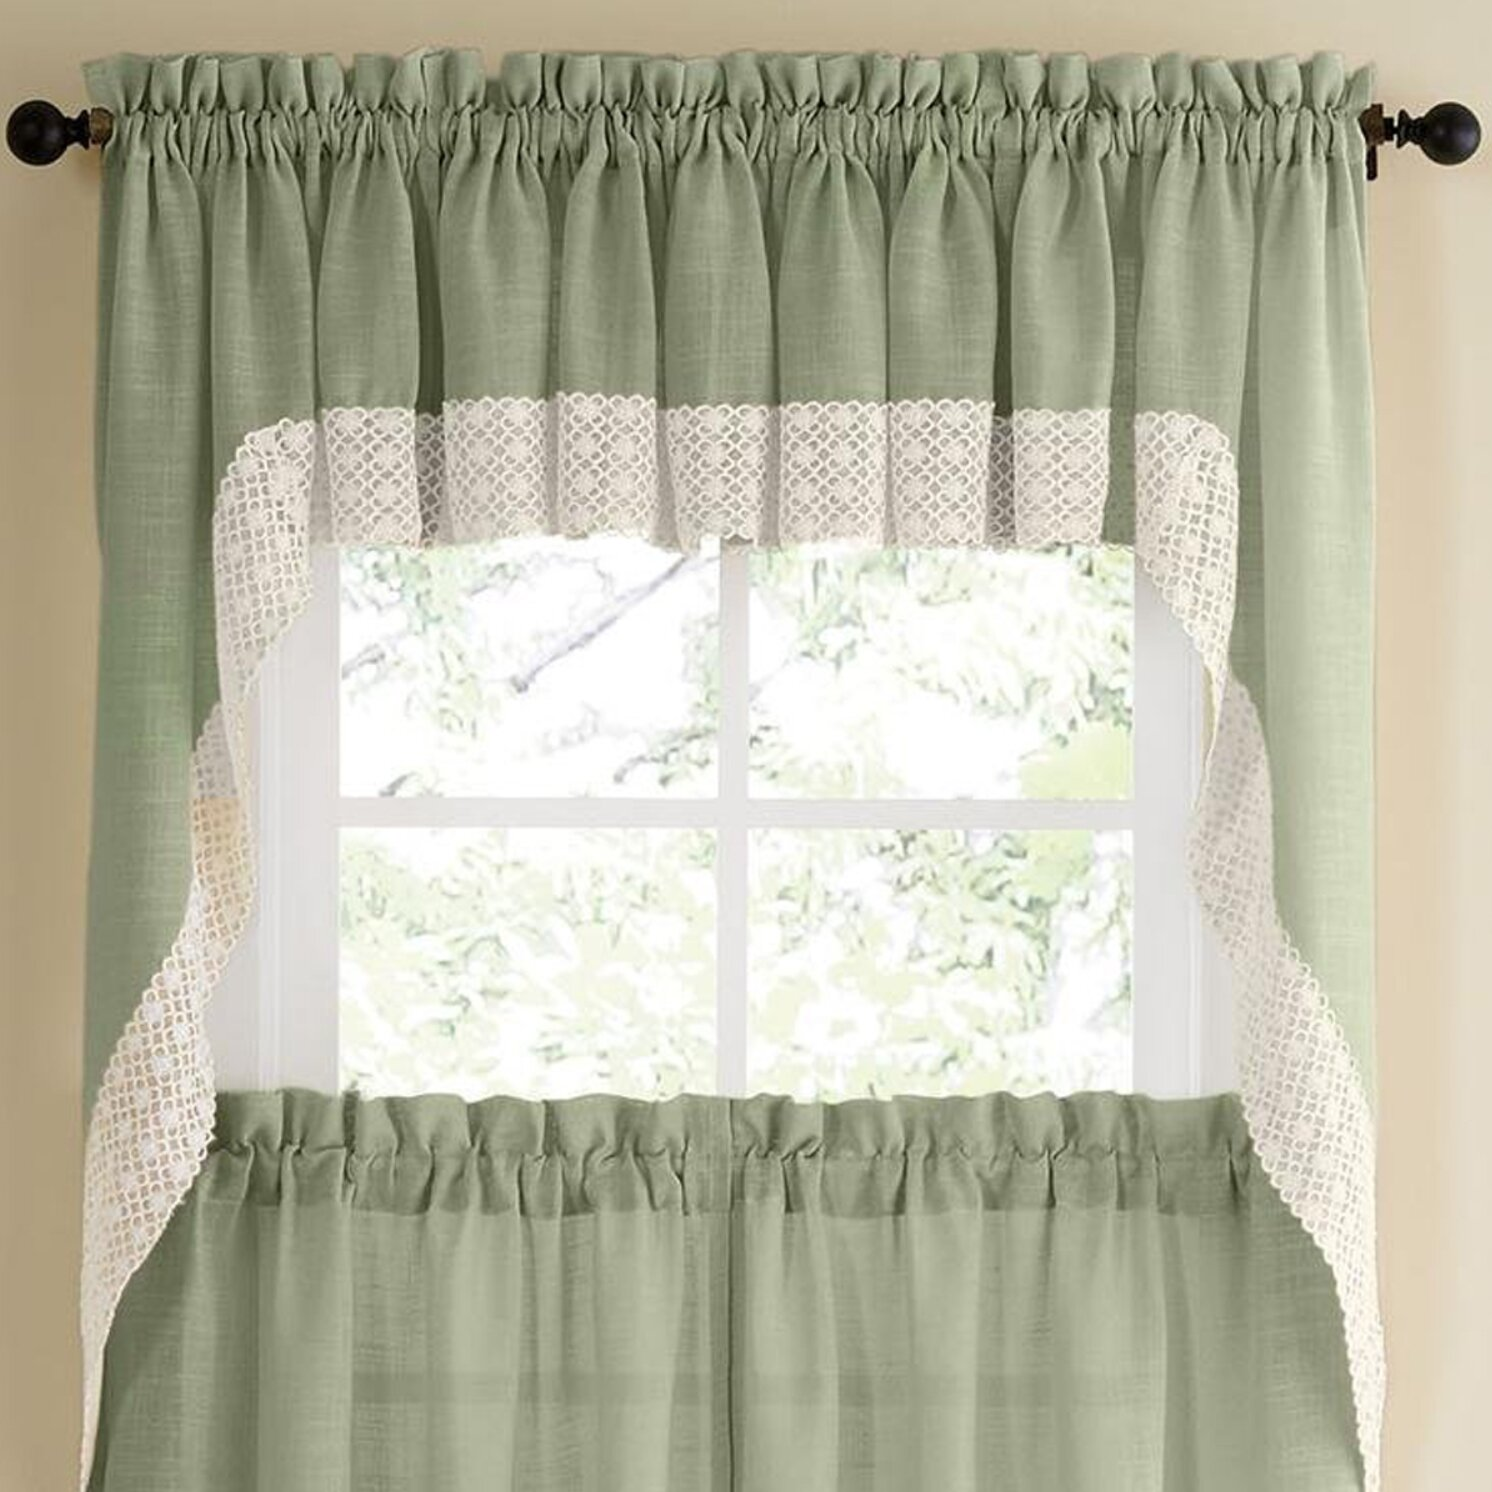 Sweet Home Collection Salem Kitchen Swag Curtain & Reviews | Wayfair